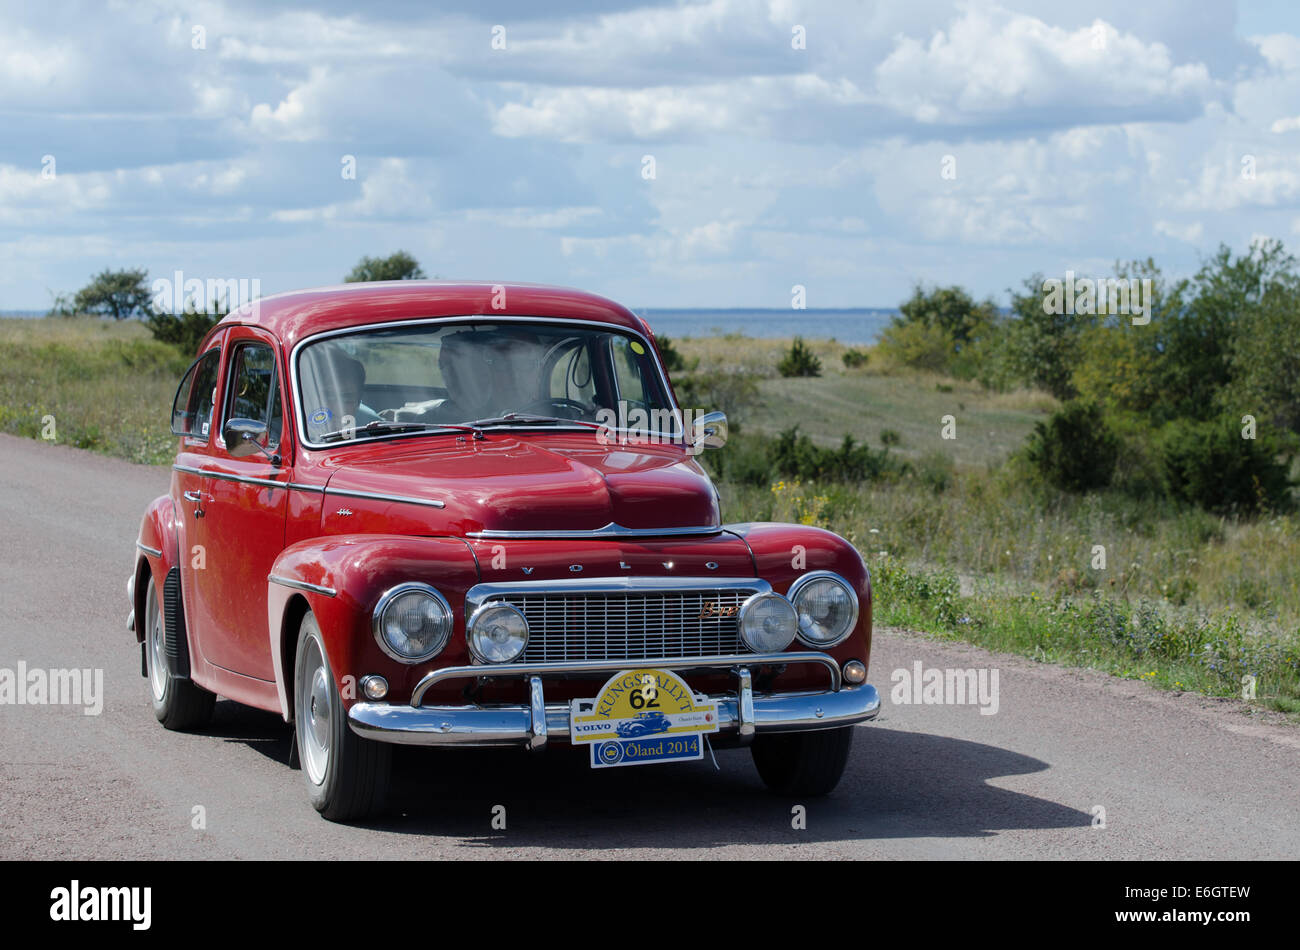 volvo pv 544 1963 oldtimer car in oldtimer rally in sweden stock photo royalty free image. Black Bedroom Furniture Sets. Home Design Ideas